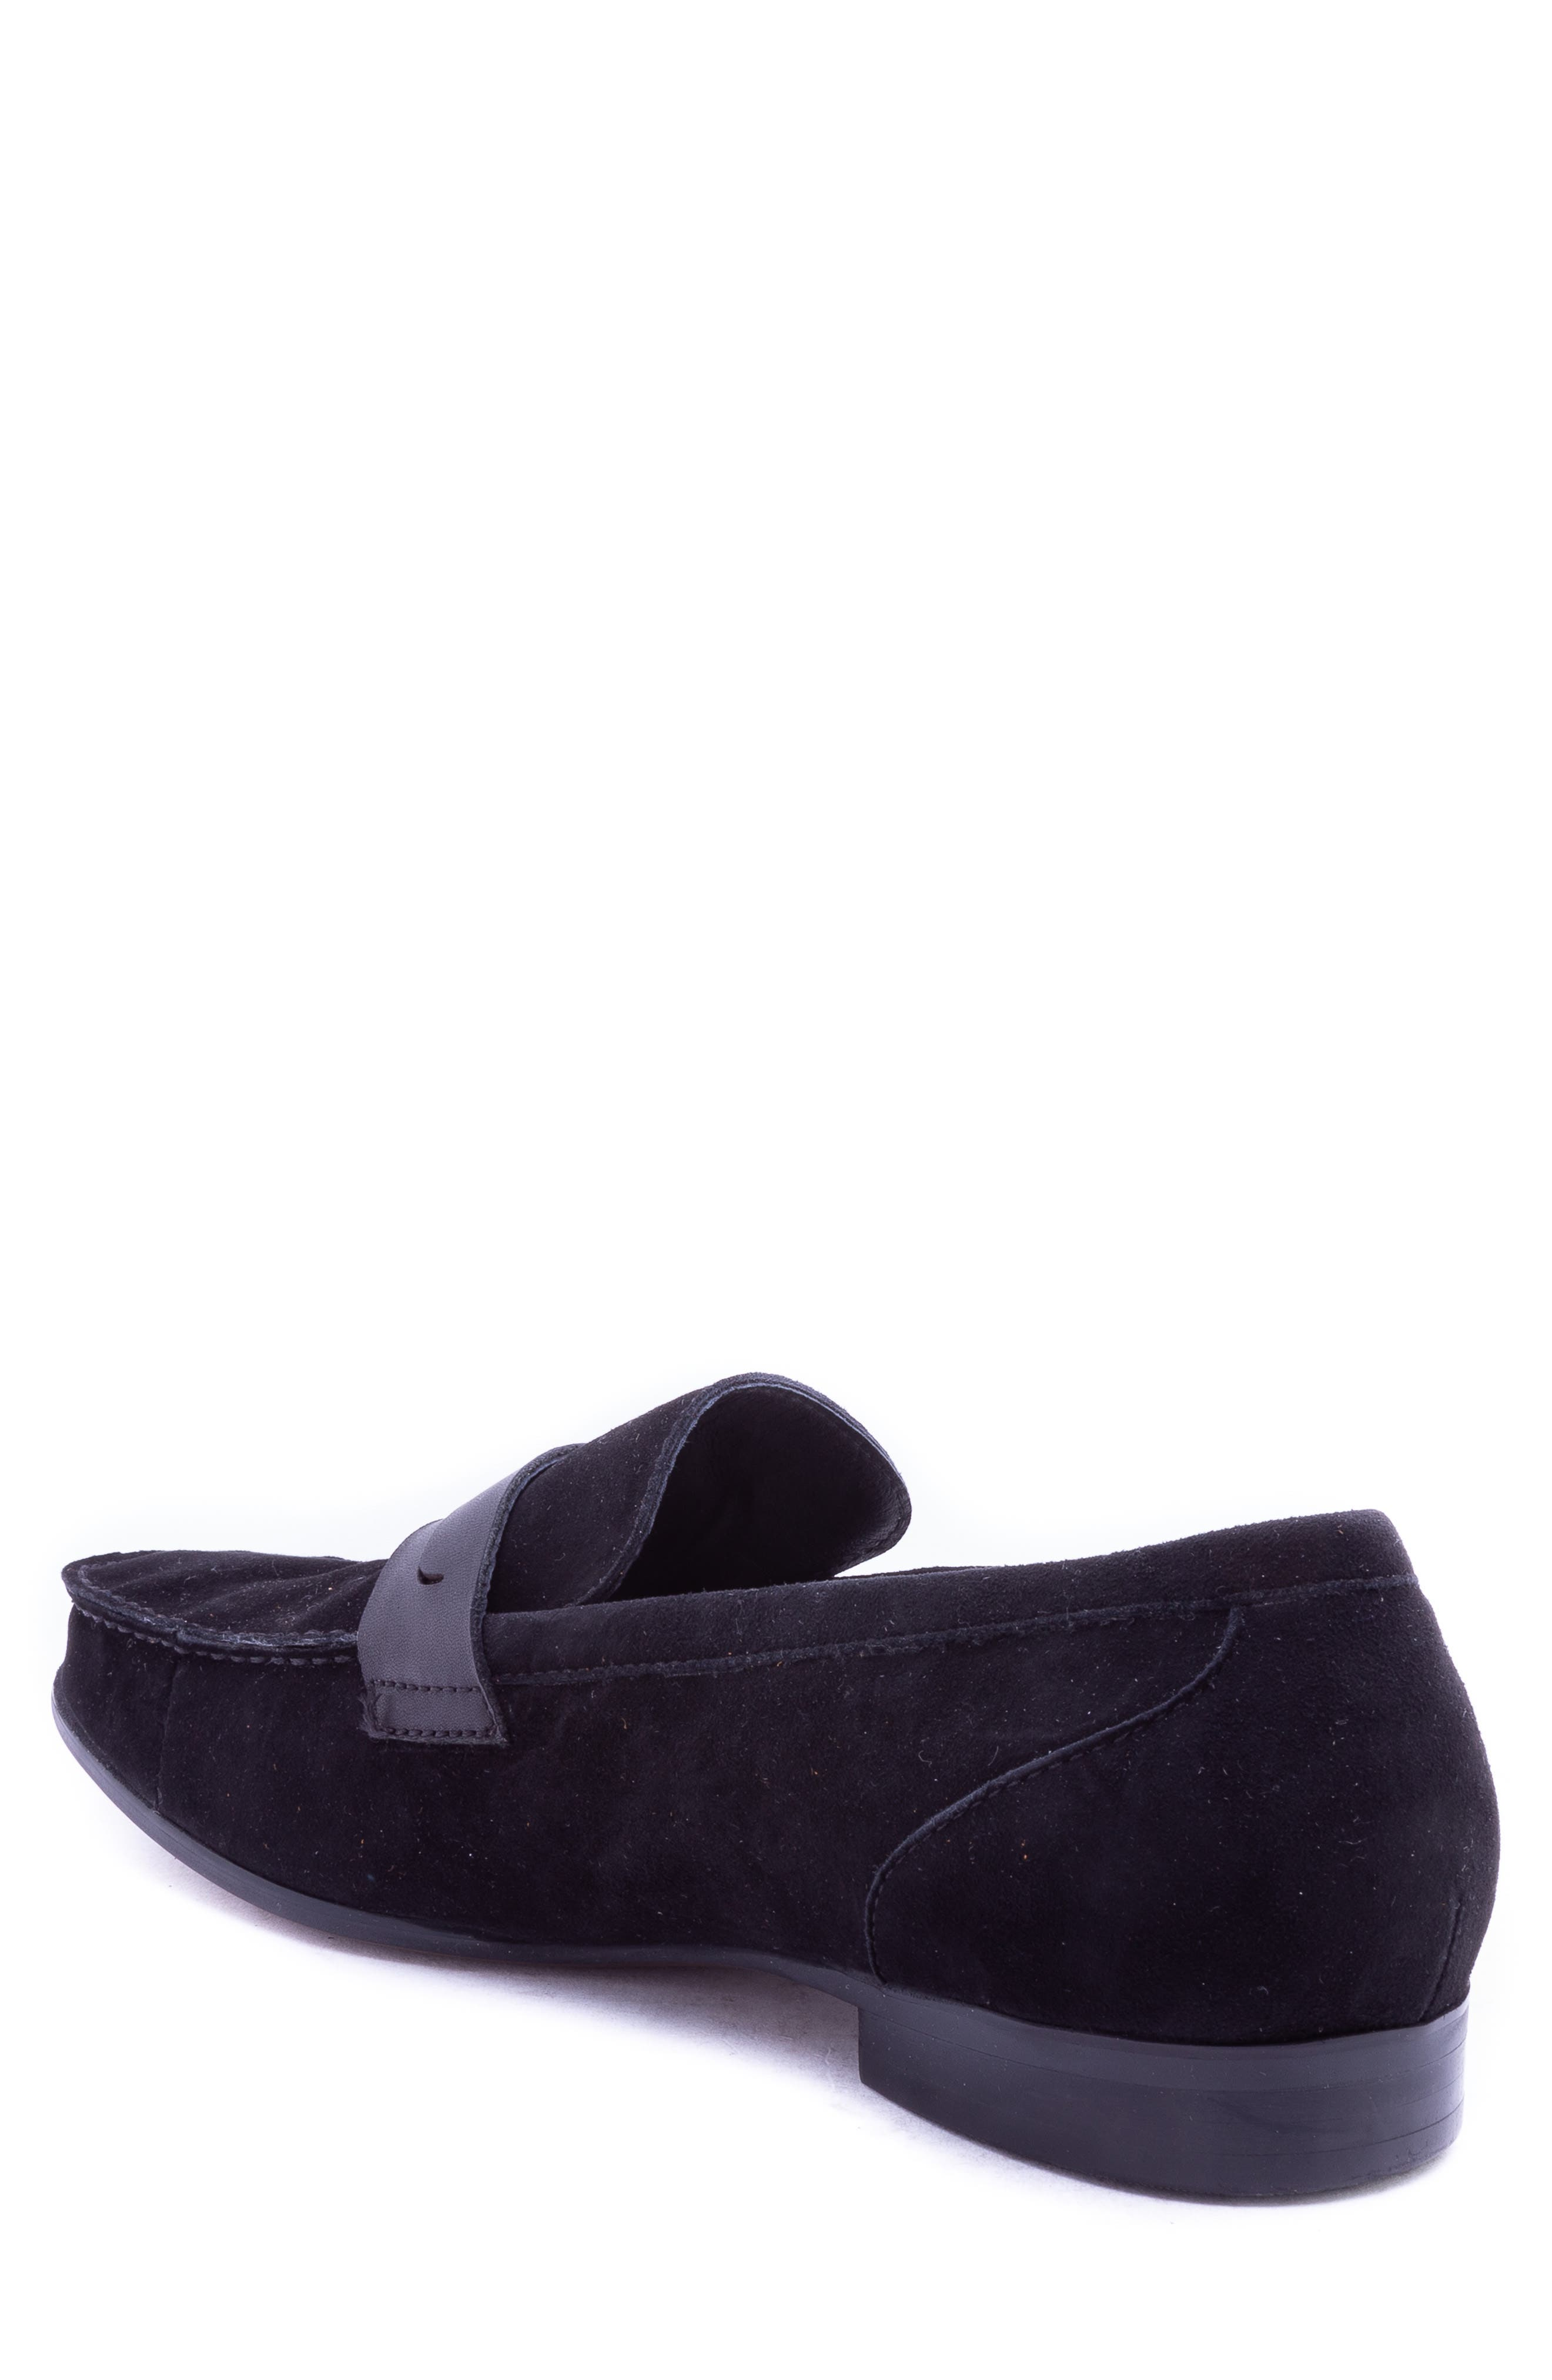 Opie Penny Loafer,                             Alternate thumbnail 2, color,                             BLACK SUEDE/ LEATHER